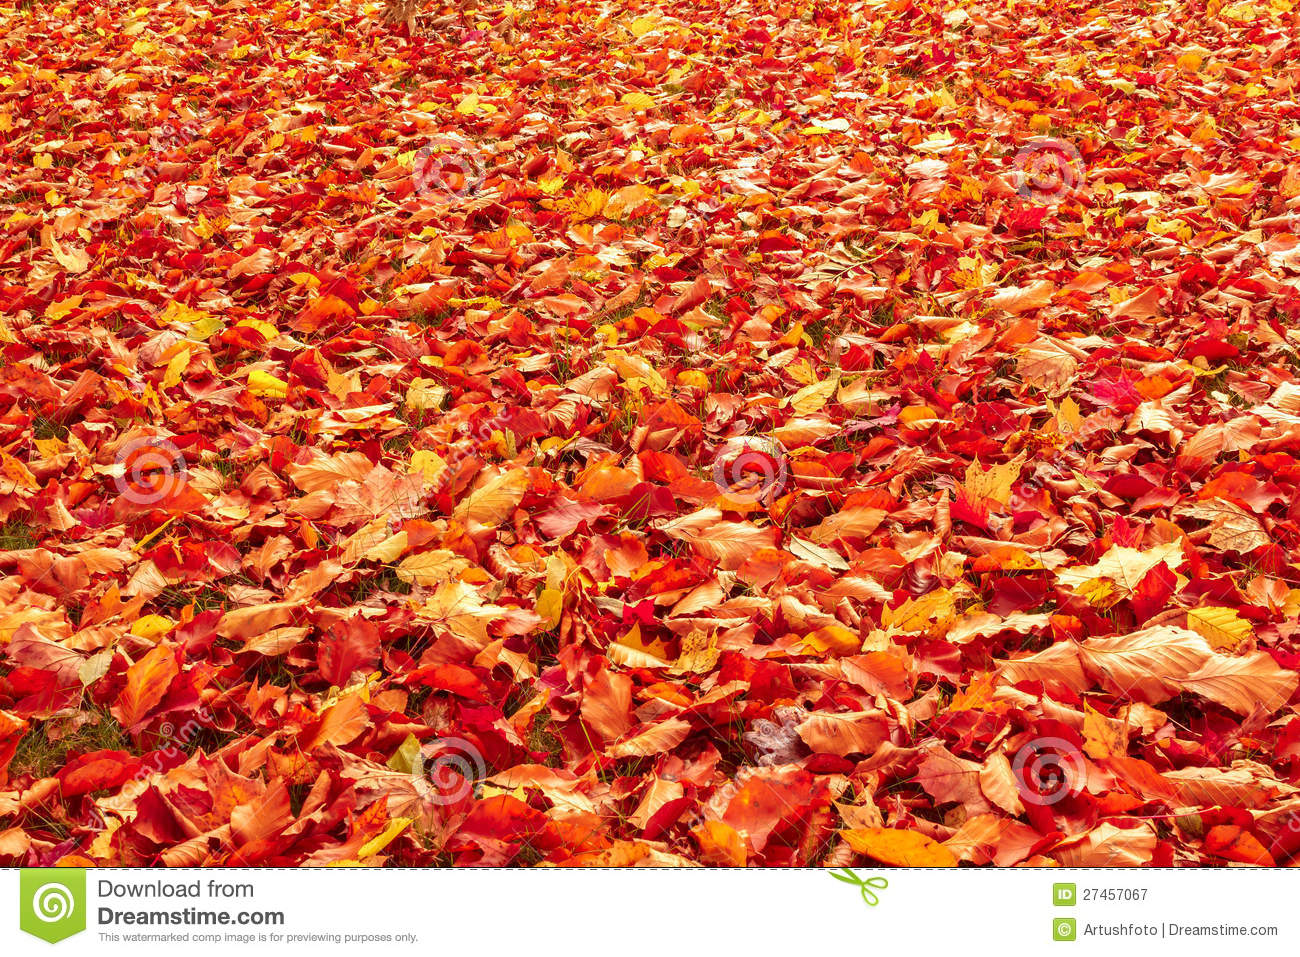 Fall Orange And Red Autumn Leaves On Ground Royalty Free Stock.